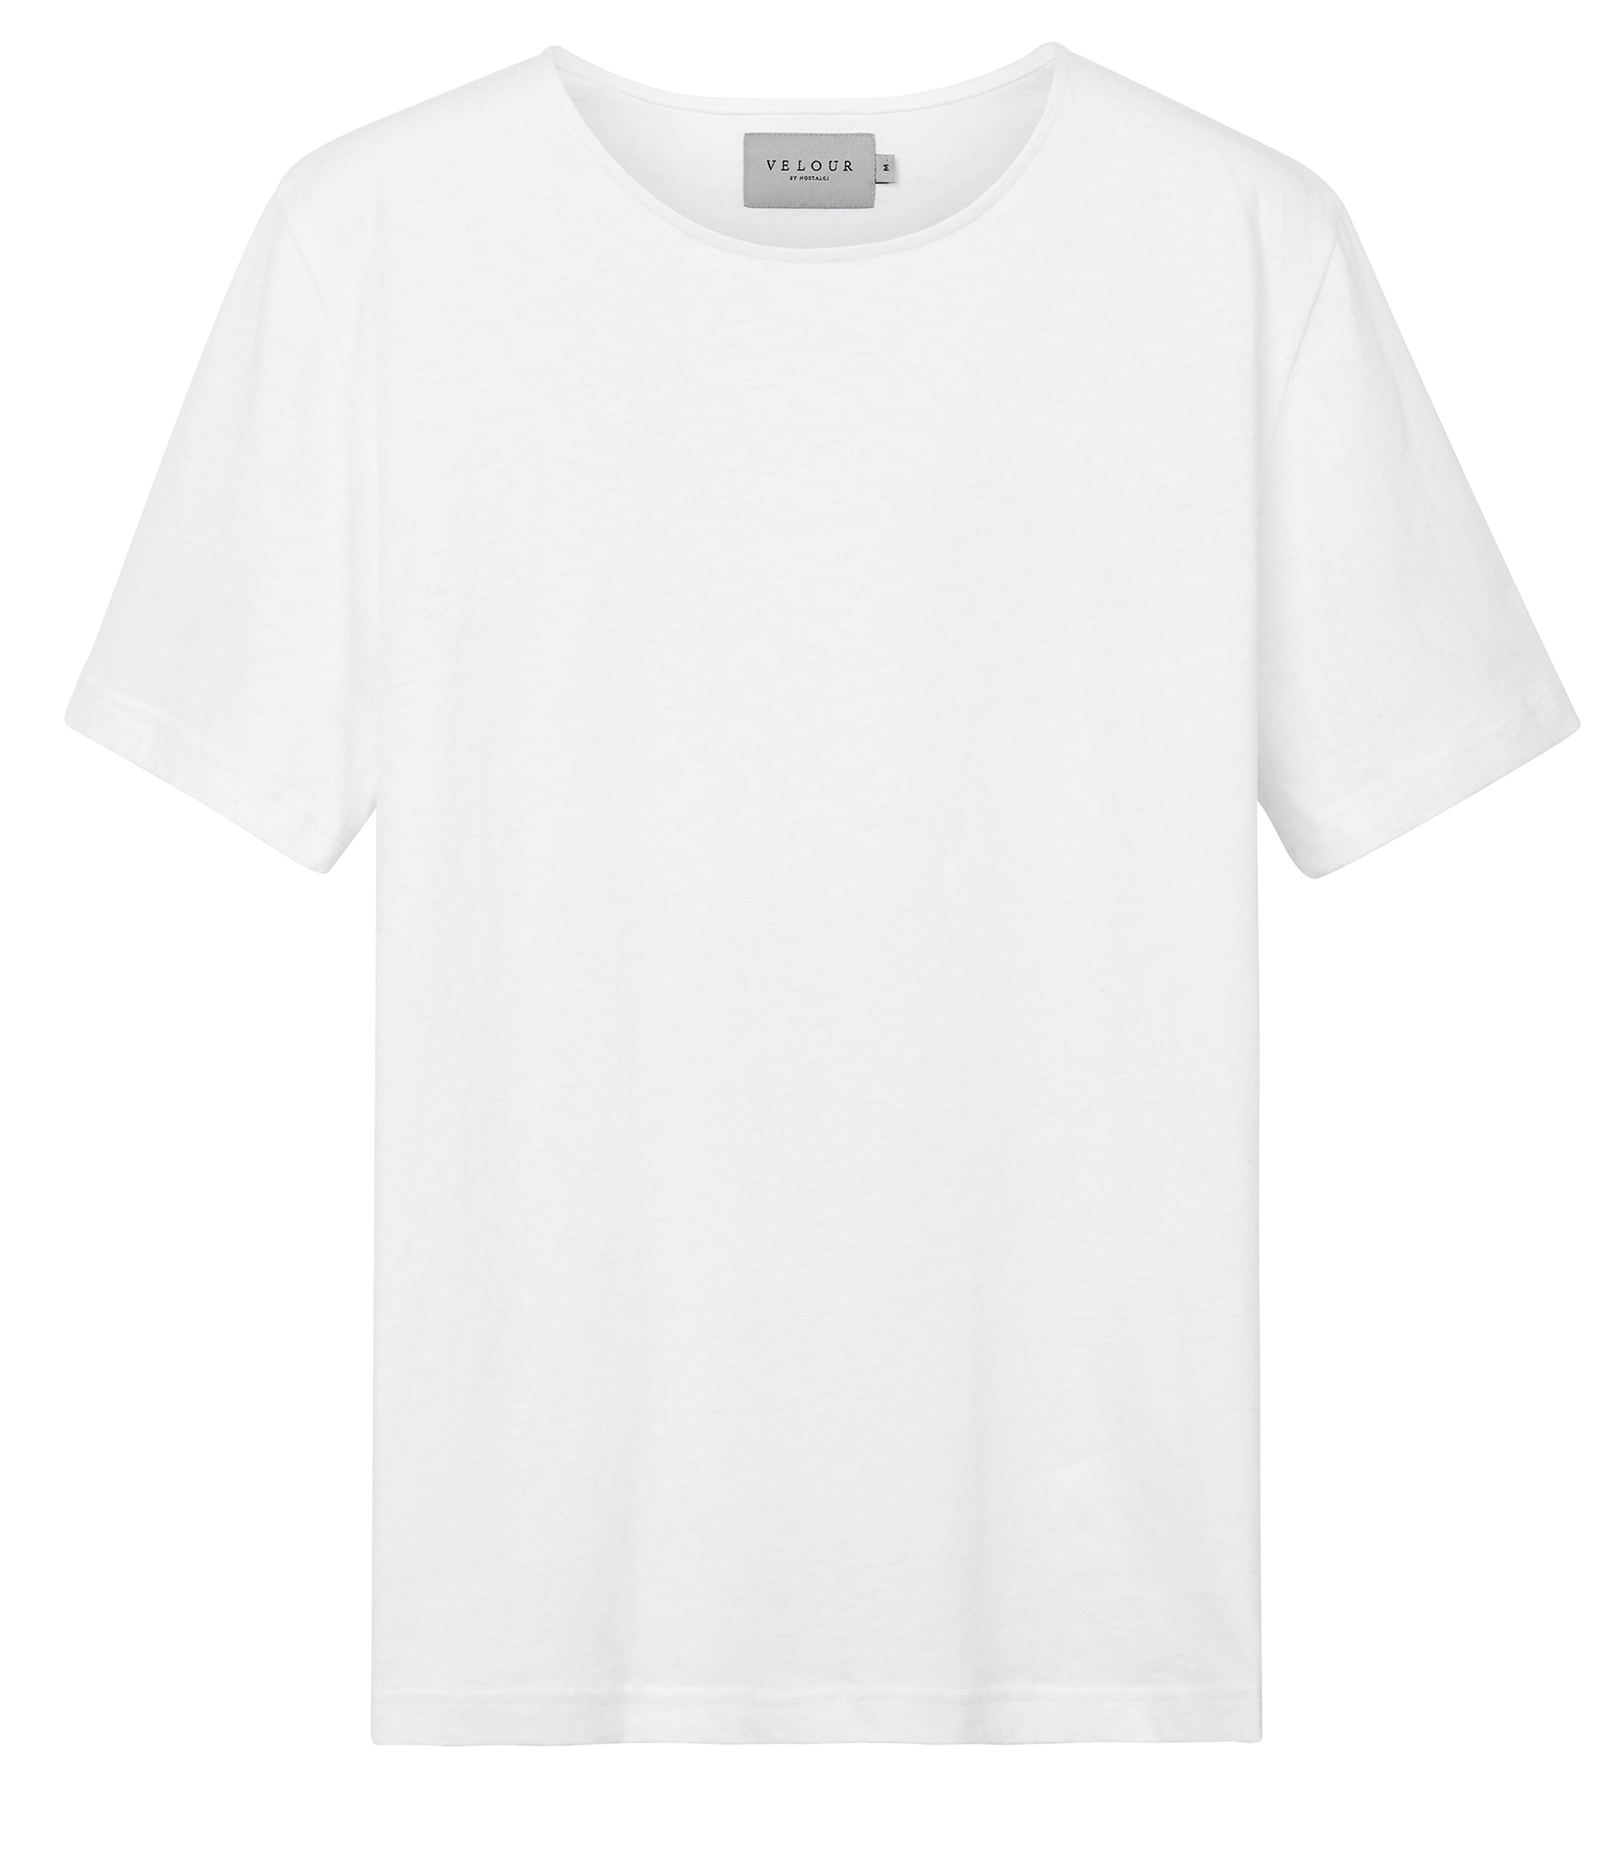 VBN_The_Swan_Plain_Tee_Jersey_White_3802900284_1800x2100